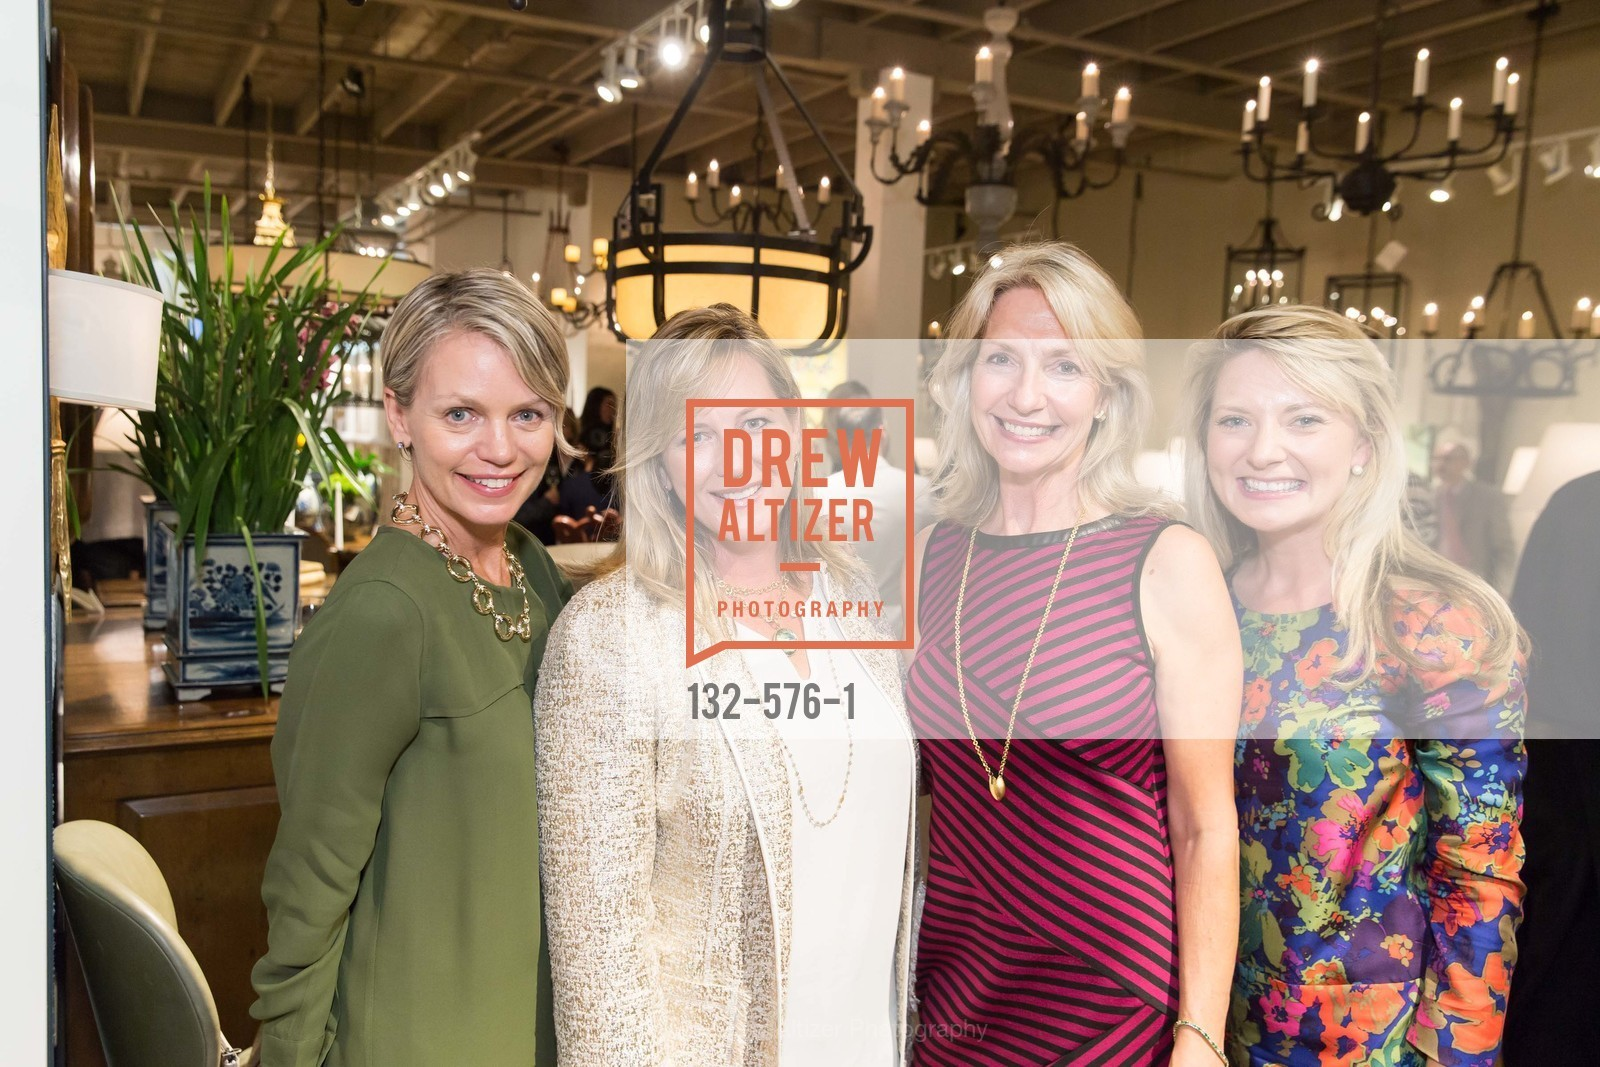 Christy Will, Anastasia Faiella, Kathy Geissler Best, Erin Calihan, SF FALL ANTIQUES SHOW Designer's Circle Cocktail Party at HEWN, US, September 23rd, 2014,Drew Altizer, Drew Altizer Photography, full-service agency, private events, San Francisco photographer, photographer california